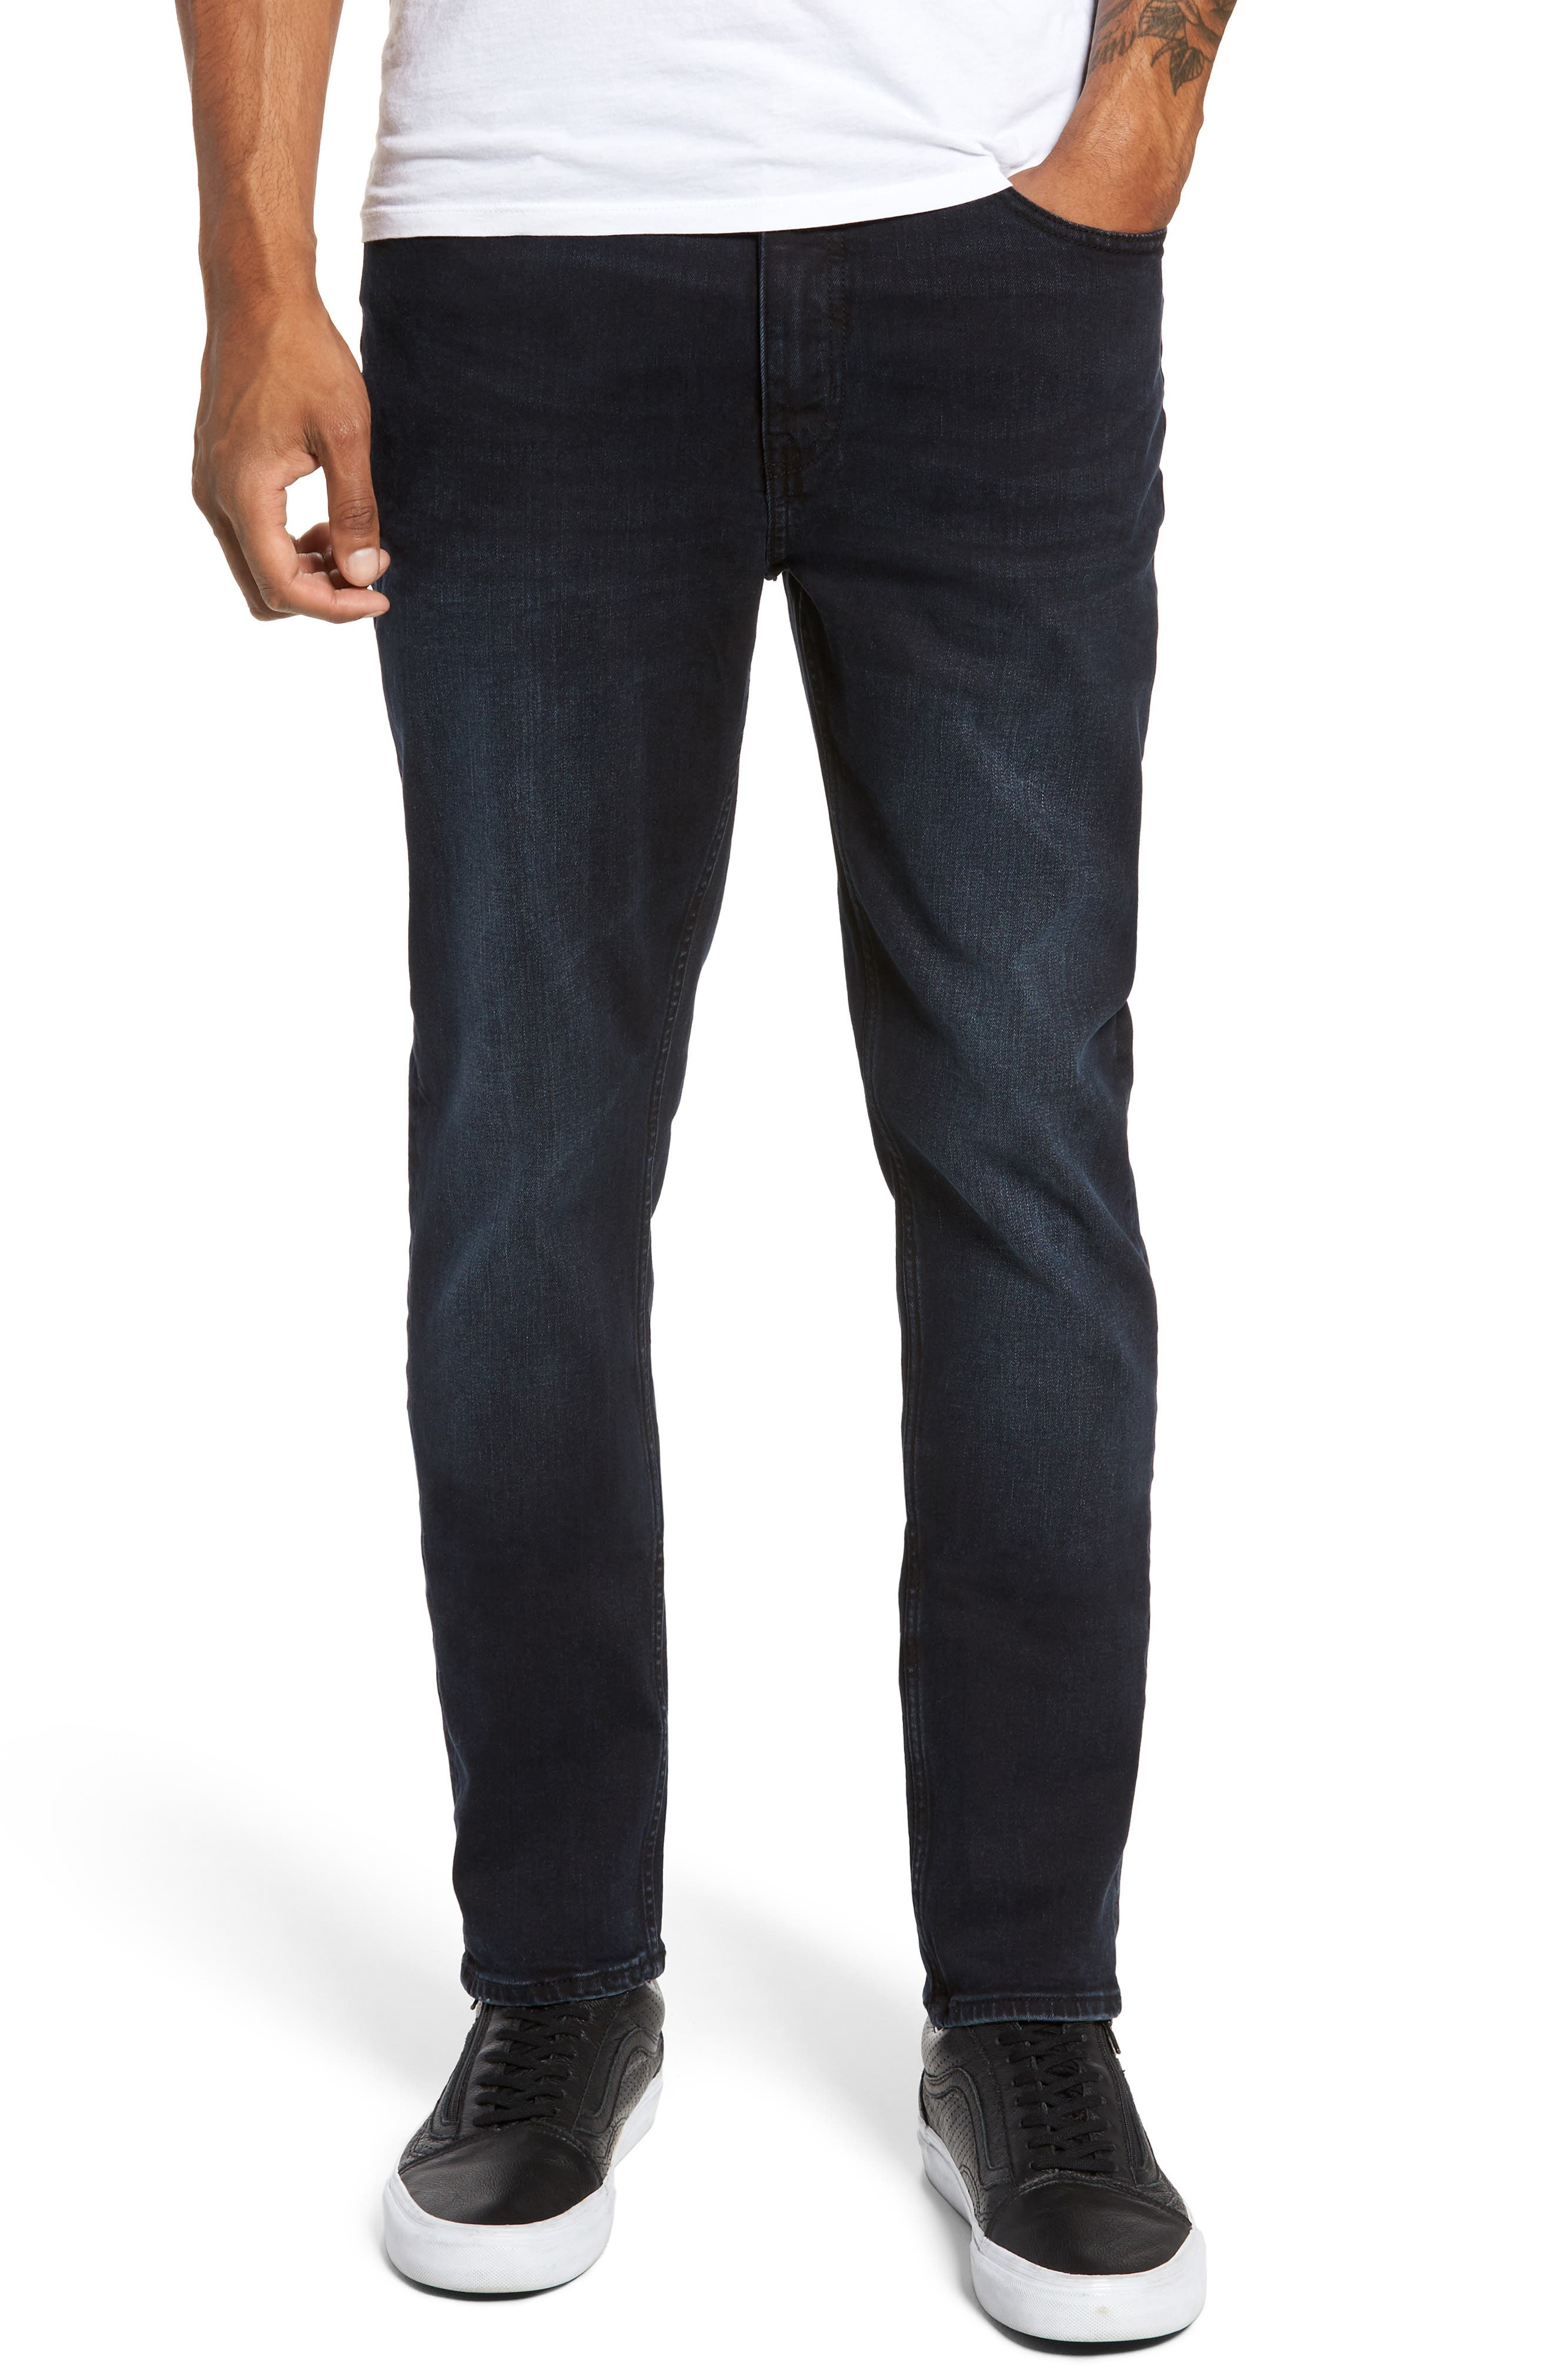 Main Image - Cheap Monday Sonic Skinny Fit Jeans (Blue/Black)